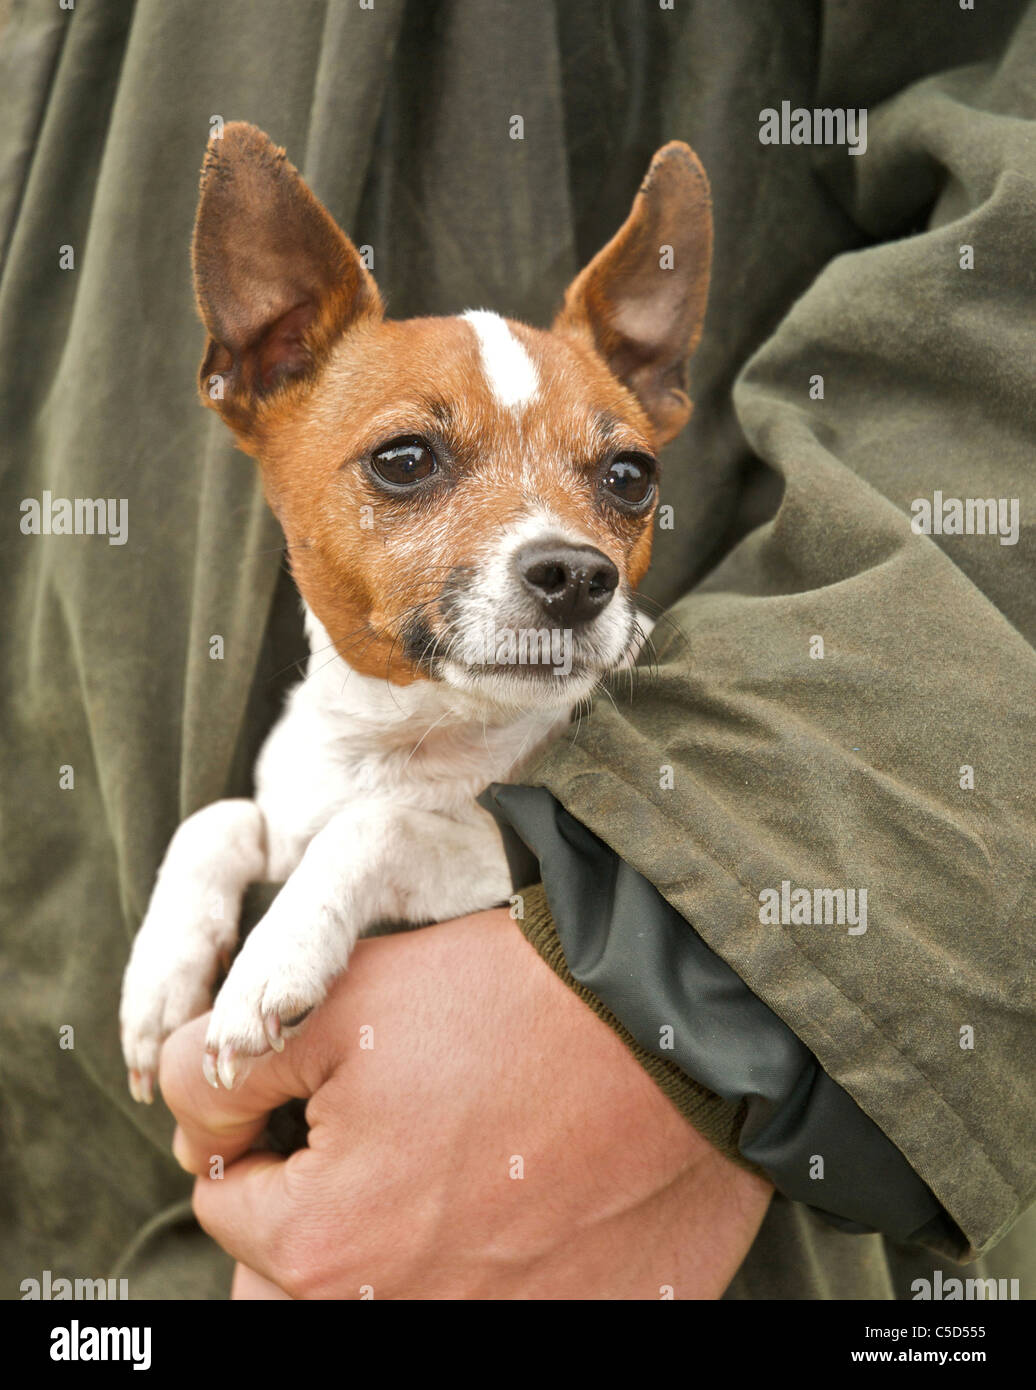 The small Jack Russell dog is often described as 'pocket sized' - Stock Image